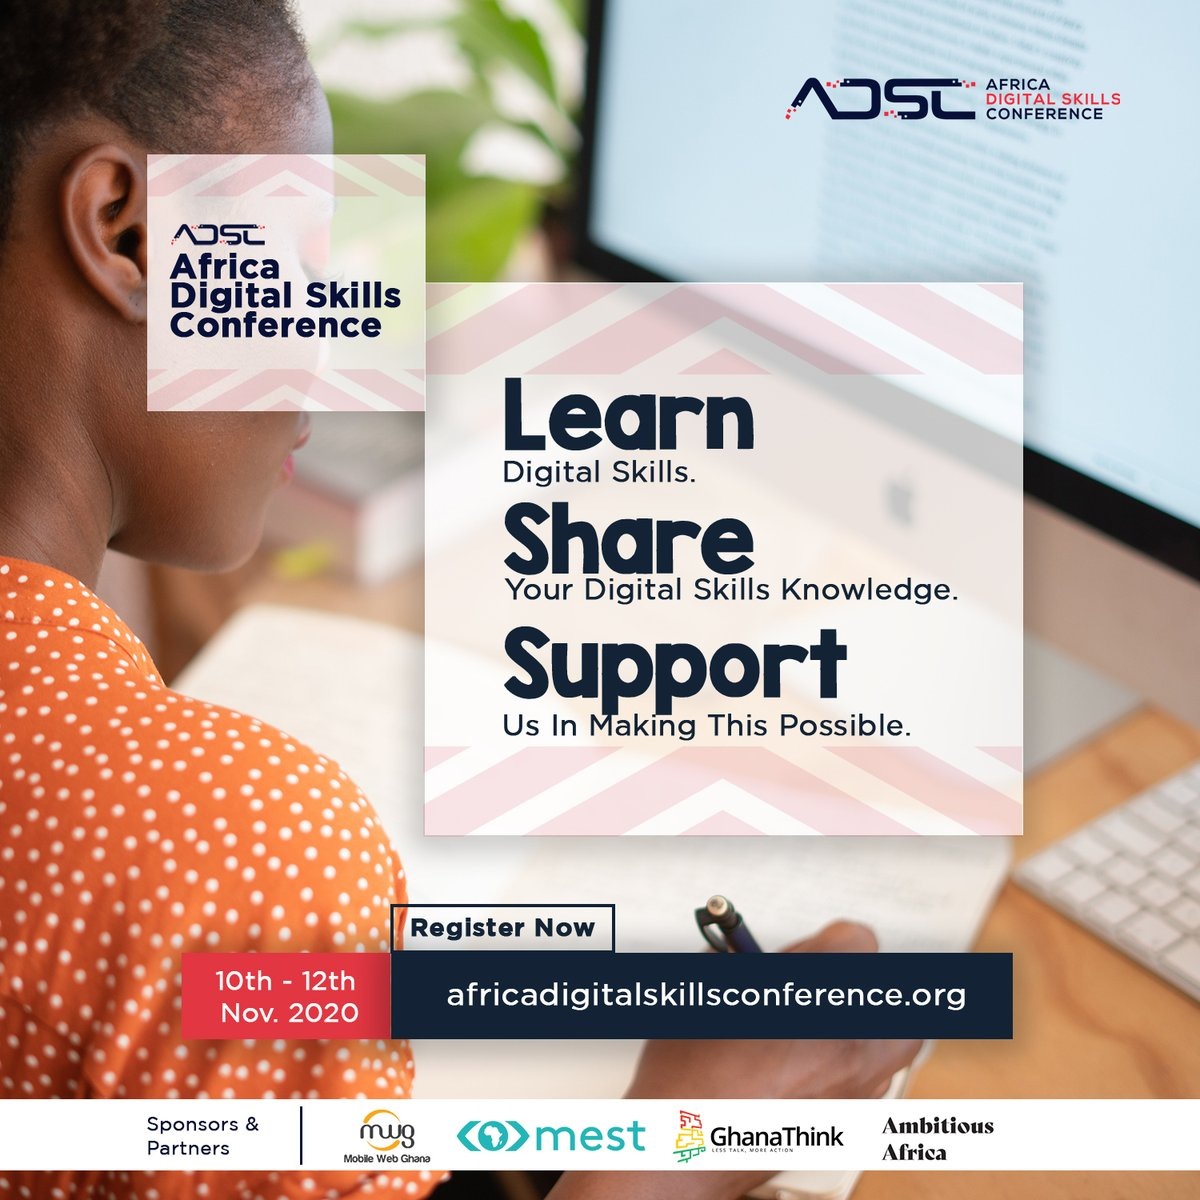 #ADSC2020 is a three-day virtual conference providing students, entrepreneurs, institutions, and the youth at large in Ghana and Africa with an opportunity to teach and learn basic digital skills and new technologies! Join us here https://t.co/UU6P4ZlCpR https://t.co/QNkhTGqMk3